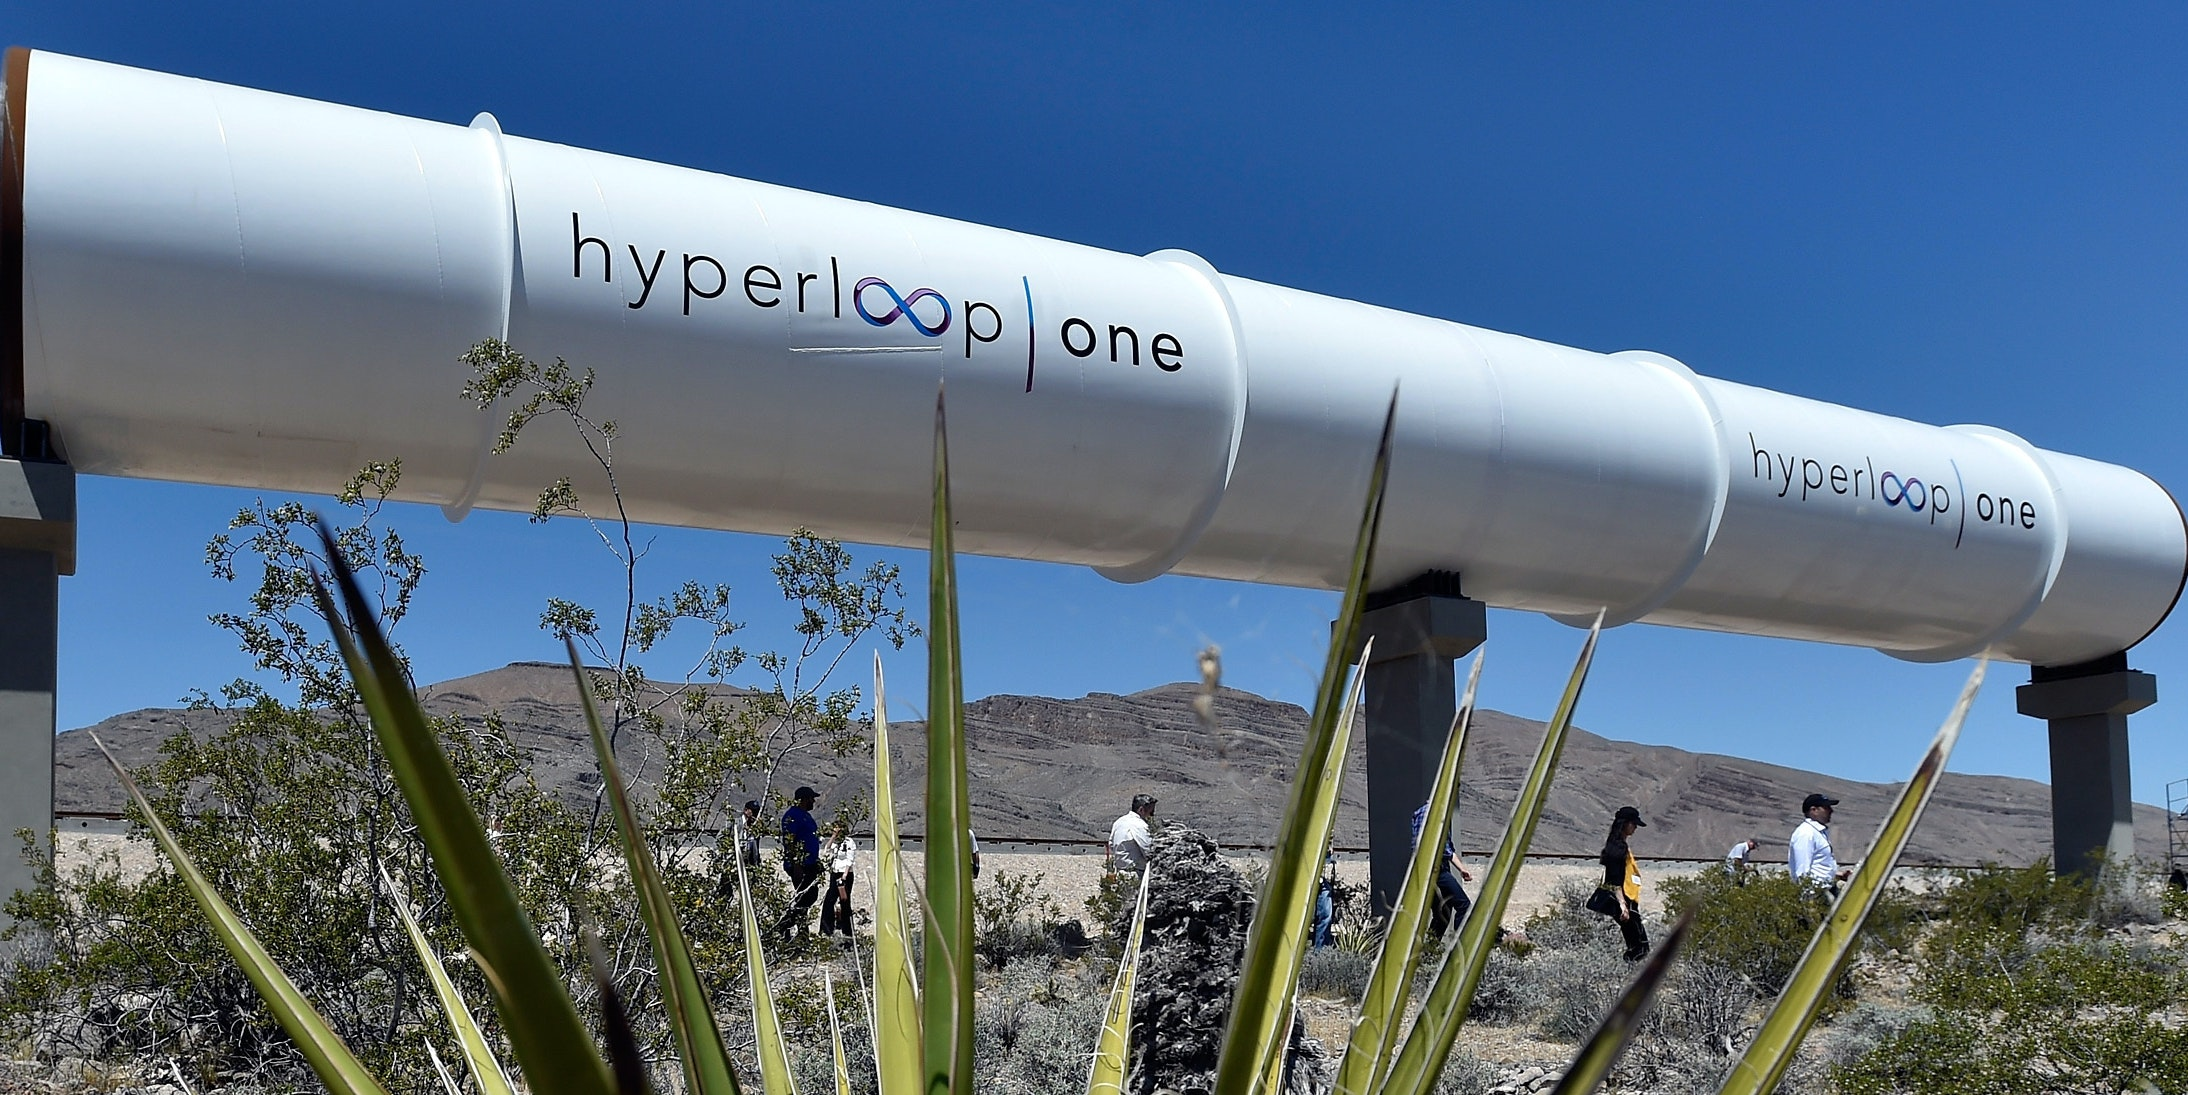 Hyperloop tube displayed during the first test of the propulsion system at the Hyperloop One Test and Safety site on May 11, 2016 in North Las Vegas, Nevada.